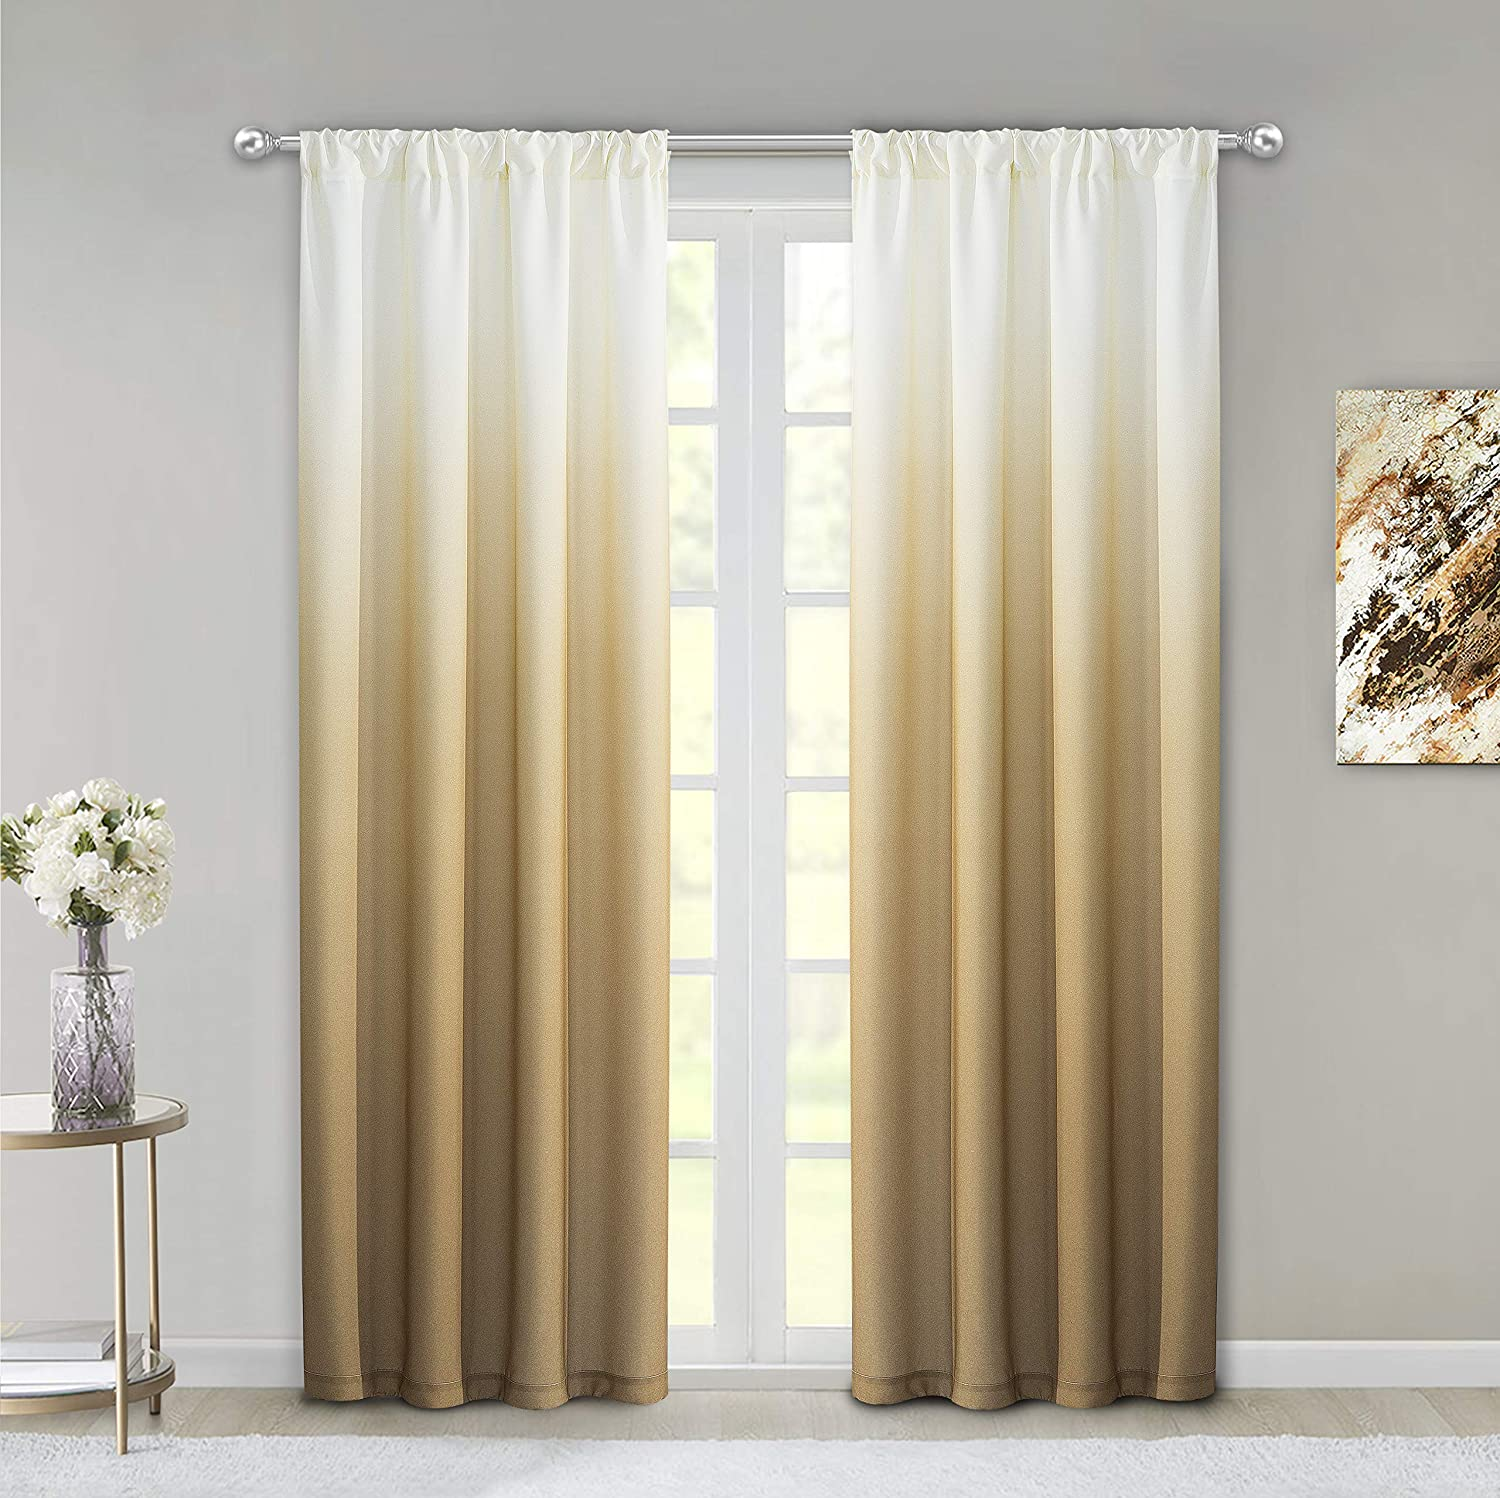 "Dainty Home Ombre Woven Shades of Color Rod Pocket Curtain Panel Pair Complete Set of 2, 40"" wide x 84"" long each, Gradient White to Golden"